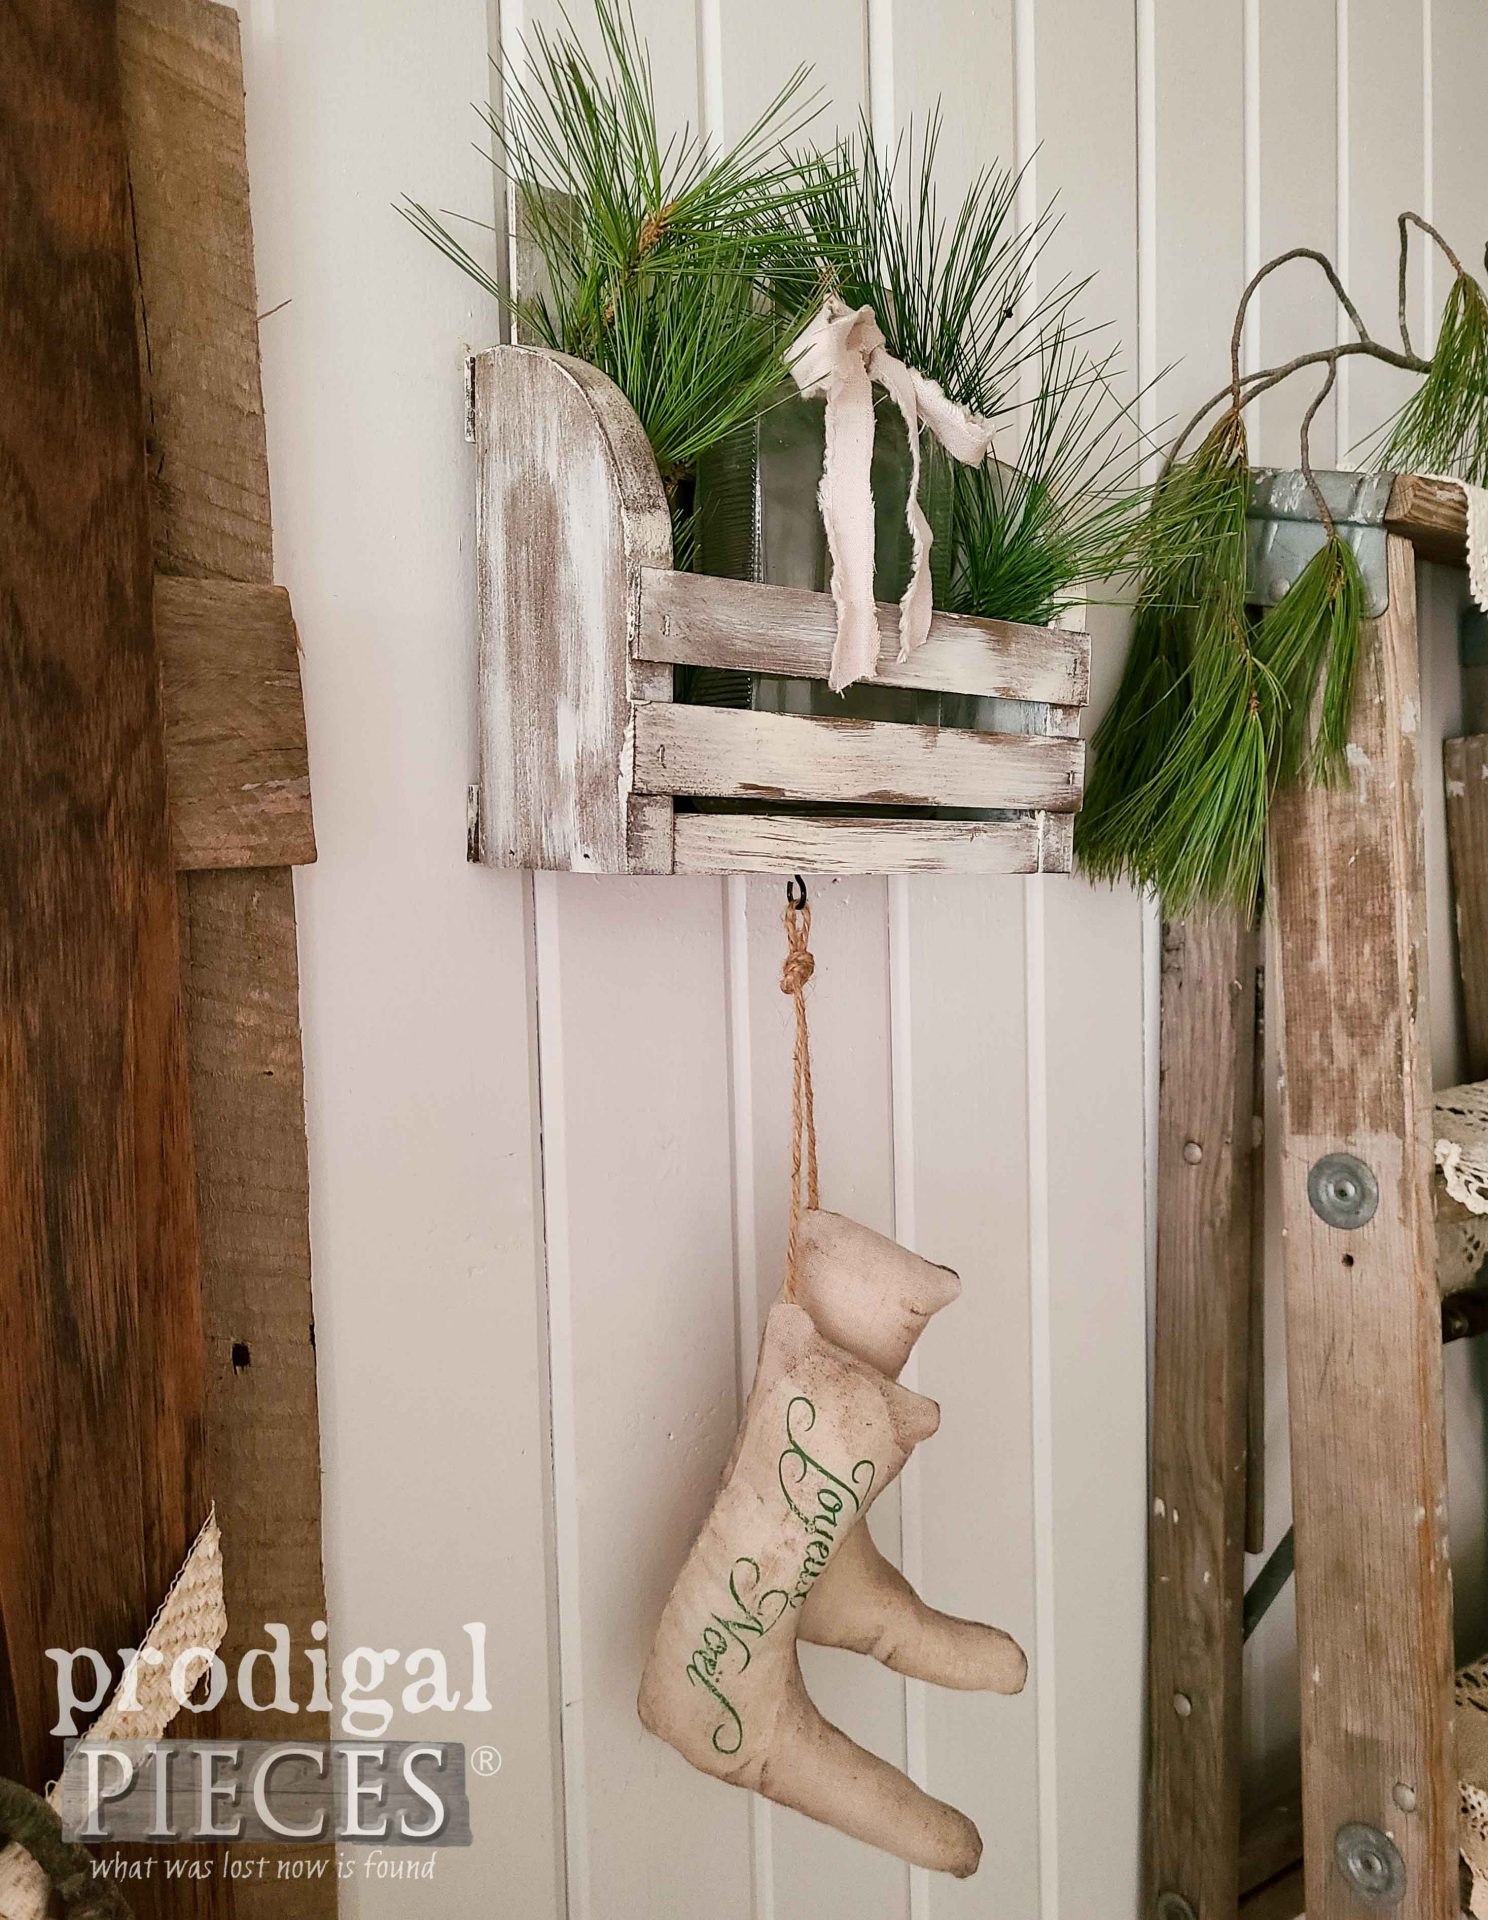 Farmhouse Christmas DIY Wall Pocket Created by Larissa of Prodigal Pieces | prodigalpieces.com #prodigalpieces #farmhouse #home #homedecor